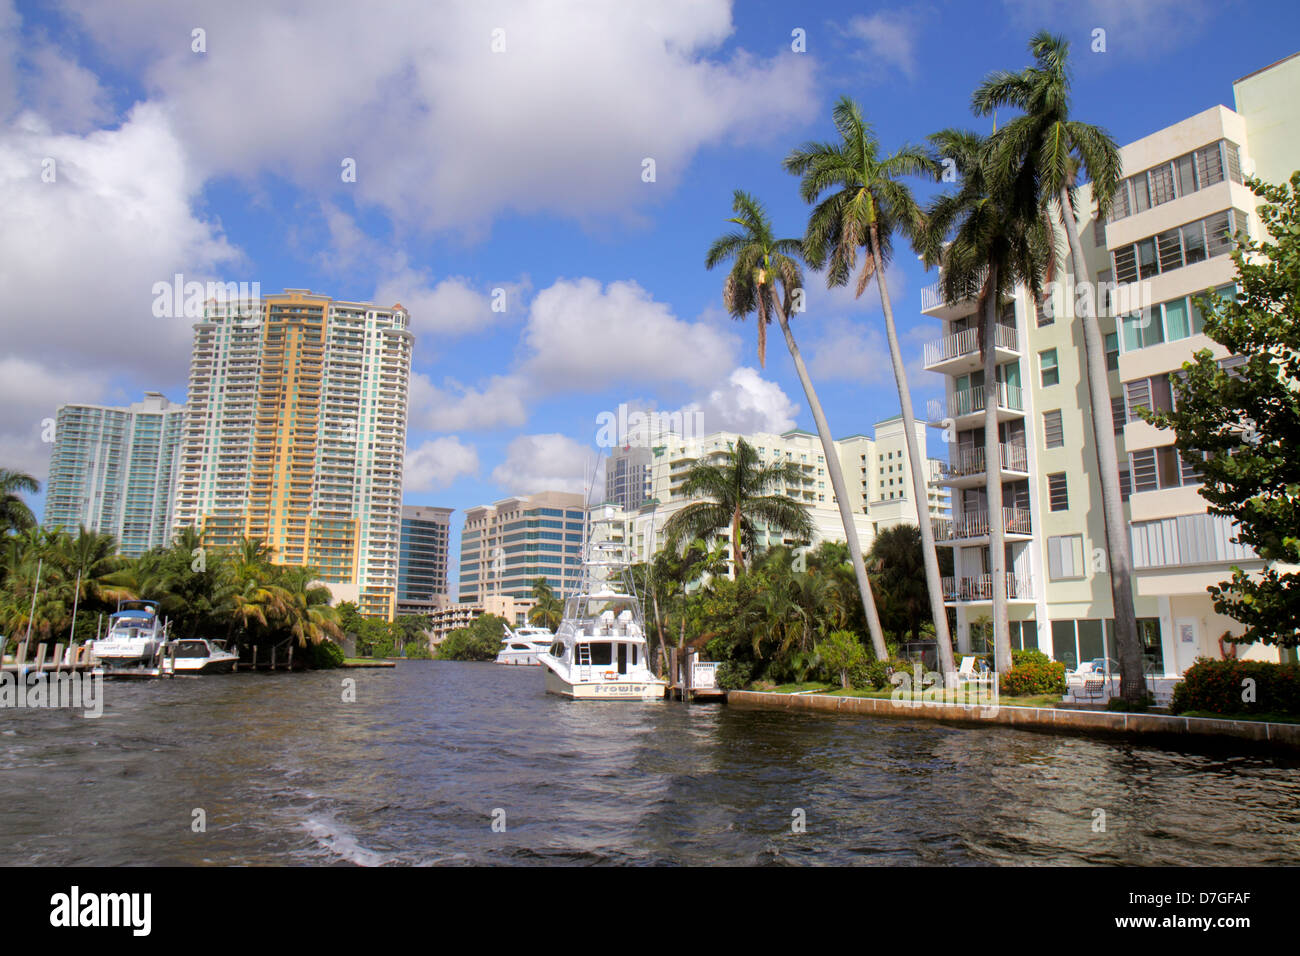 balcony las olas Fort Lauderdale Florida Ft New River City Skyline